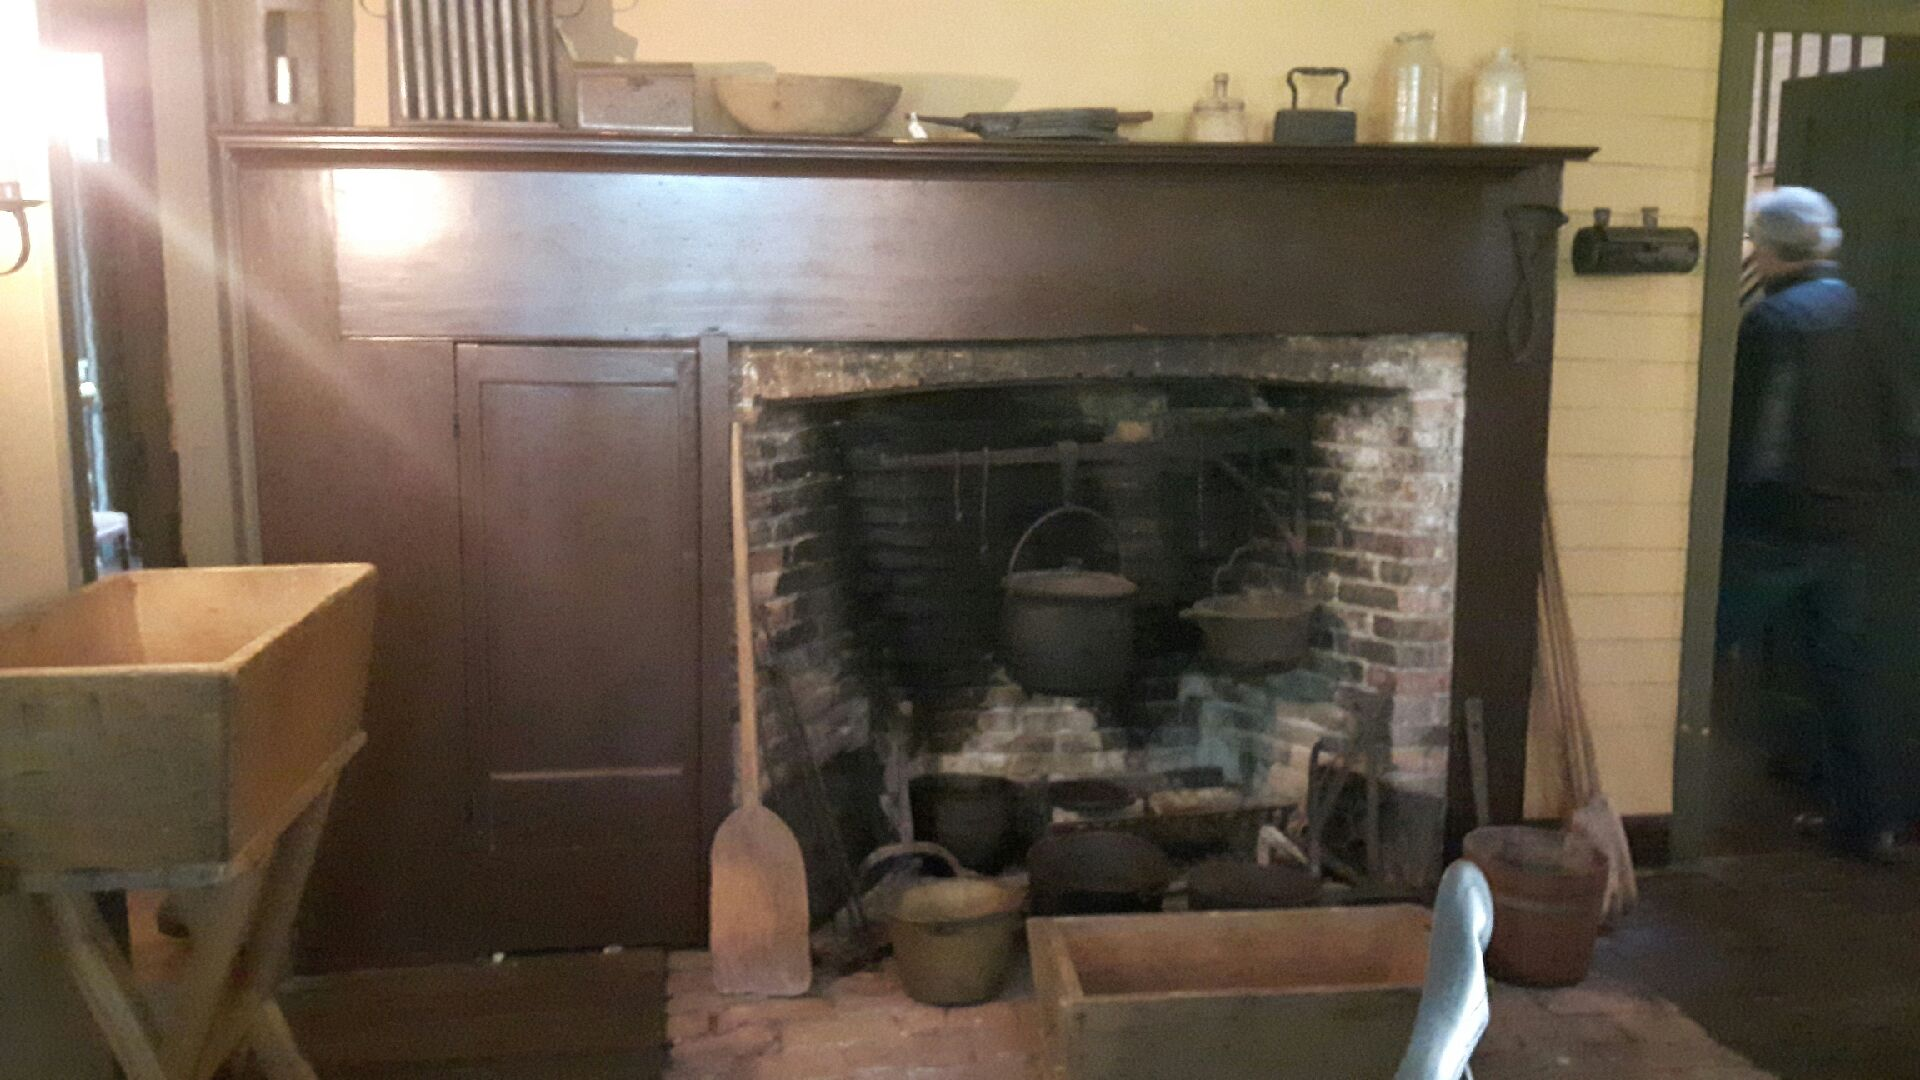 Barnum family meals were cooked in this fireplace